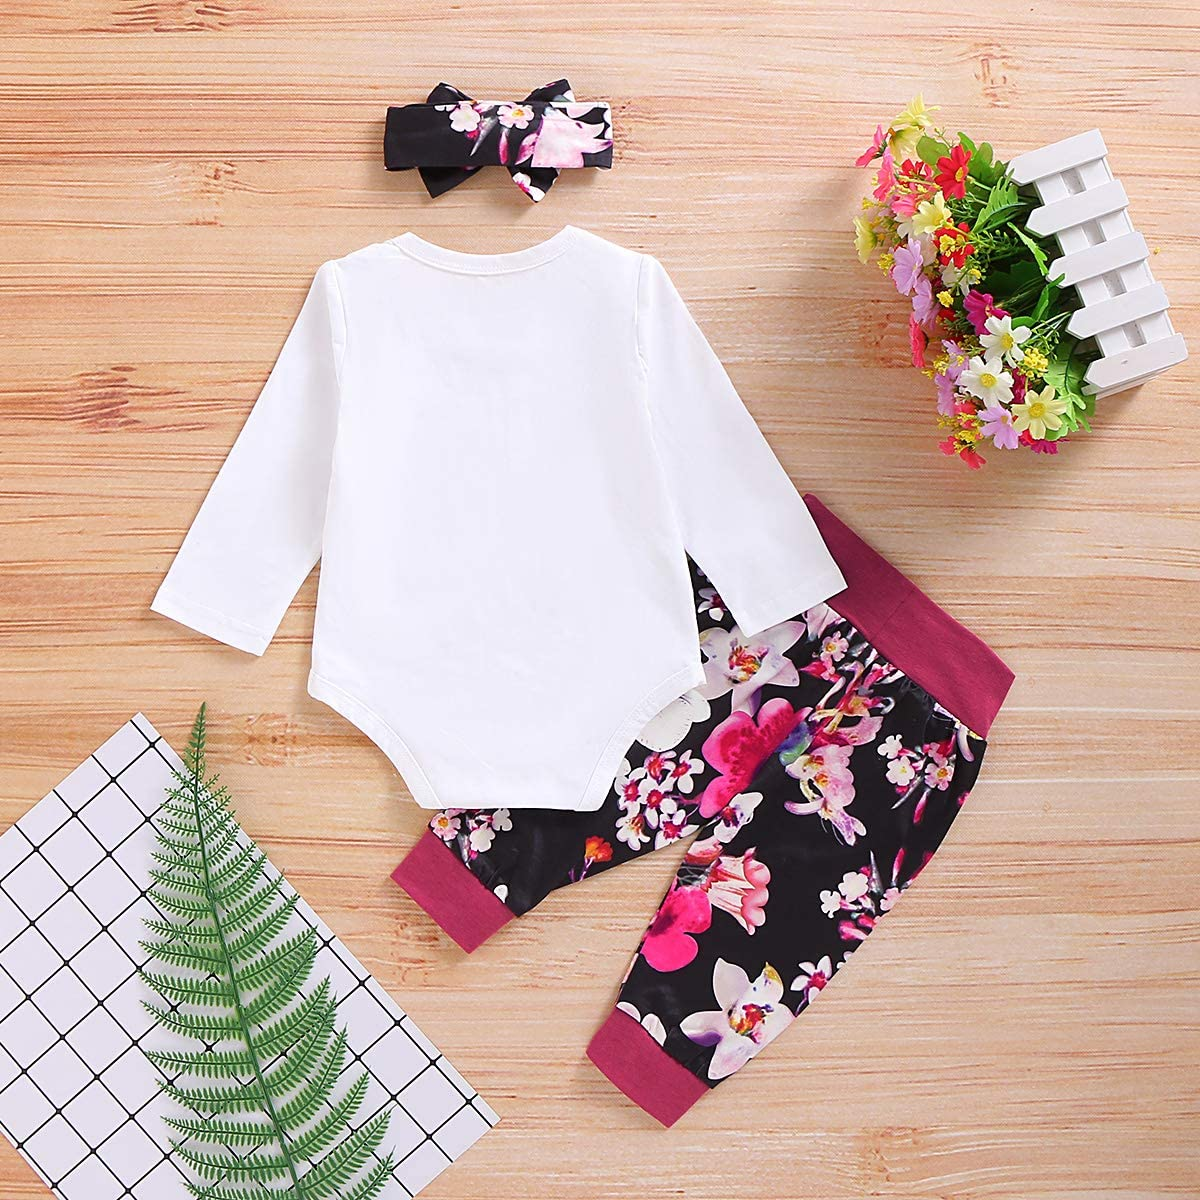 DaMohony Direct Baby Girl Outfits Newborn Baby Girl Clothes Long Sleeve Romper Floral Pants Headband Toddler Girl Outfits Set